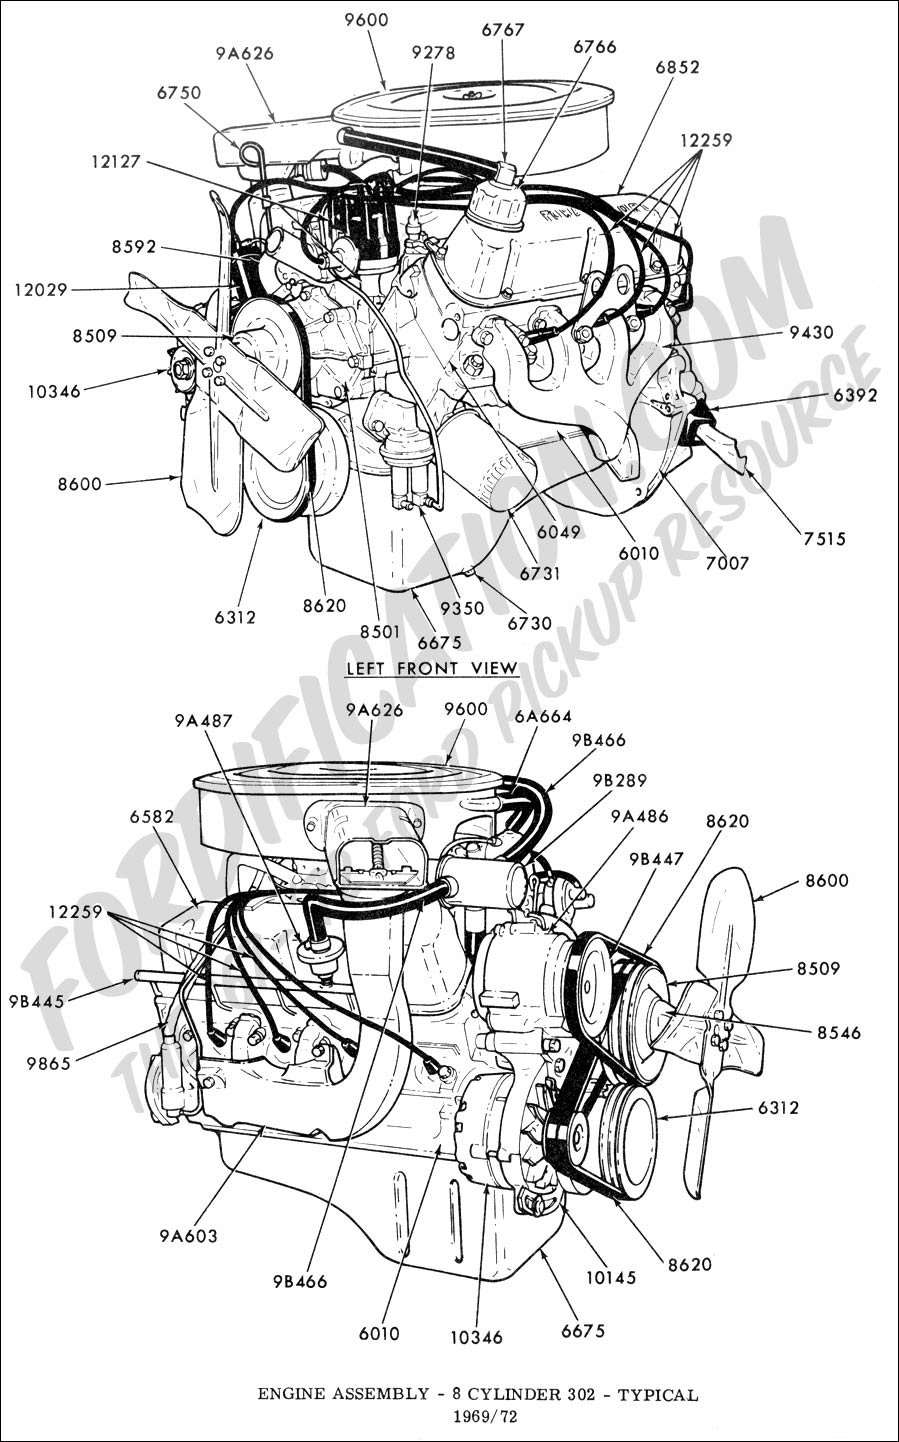 1984 Ford Ranger Carburetor Diagram Guide And Troubleshooting Of 1988 Fuel Truck Technical Drawings Schematics Section E Engine Related Components 23